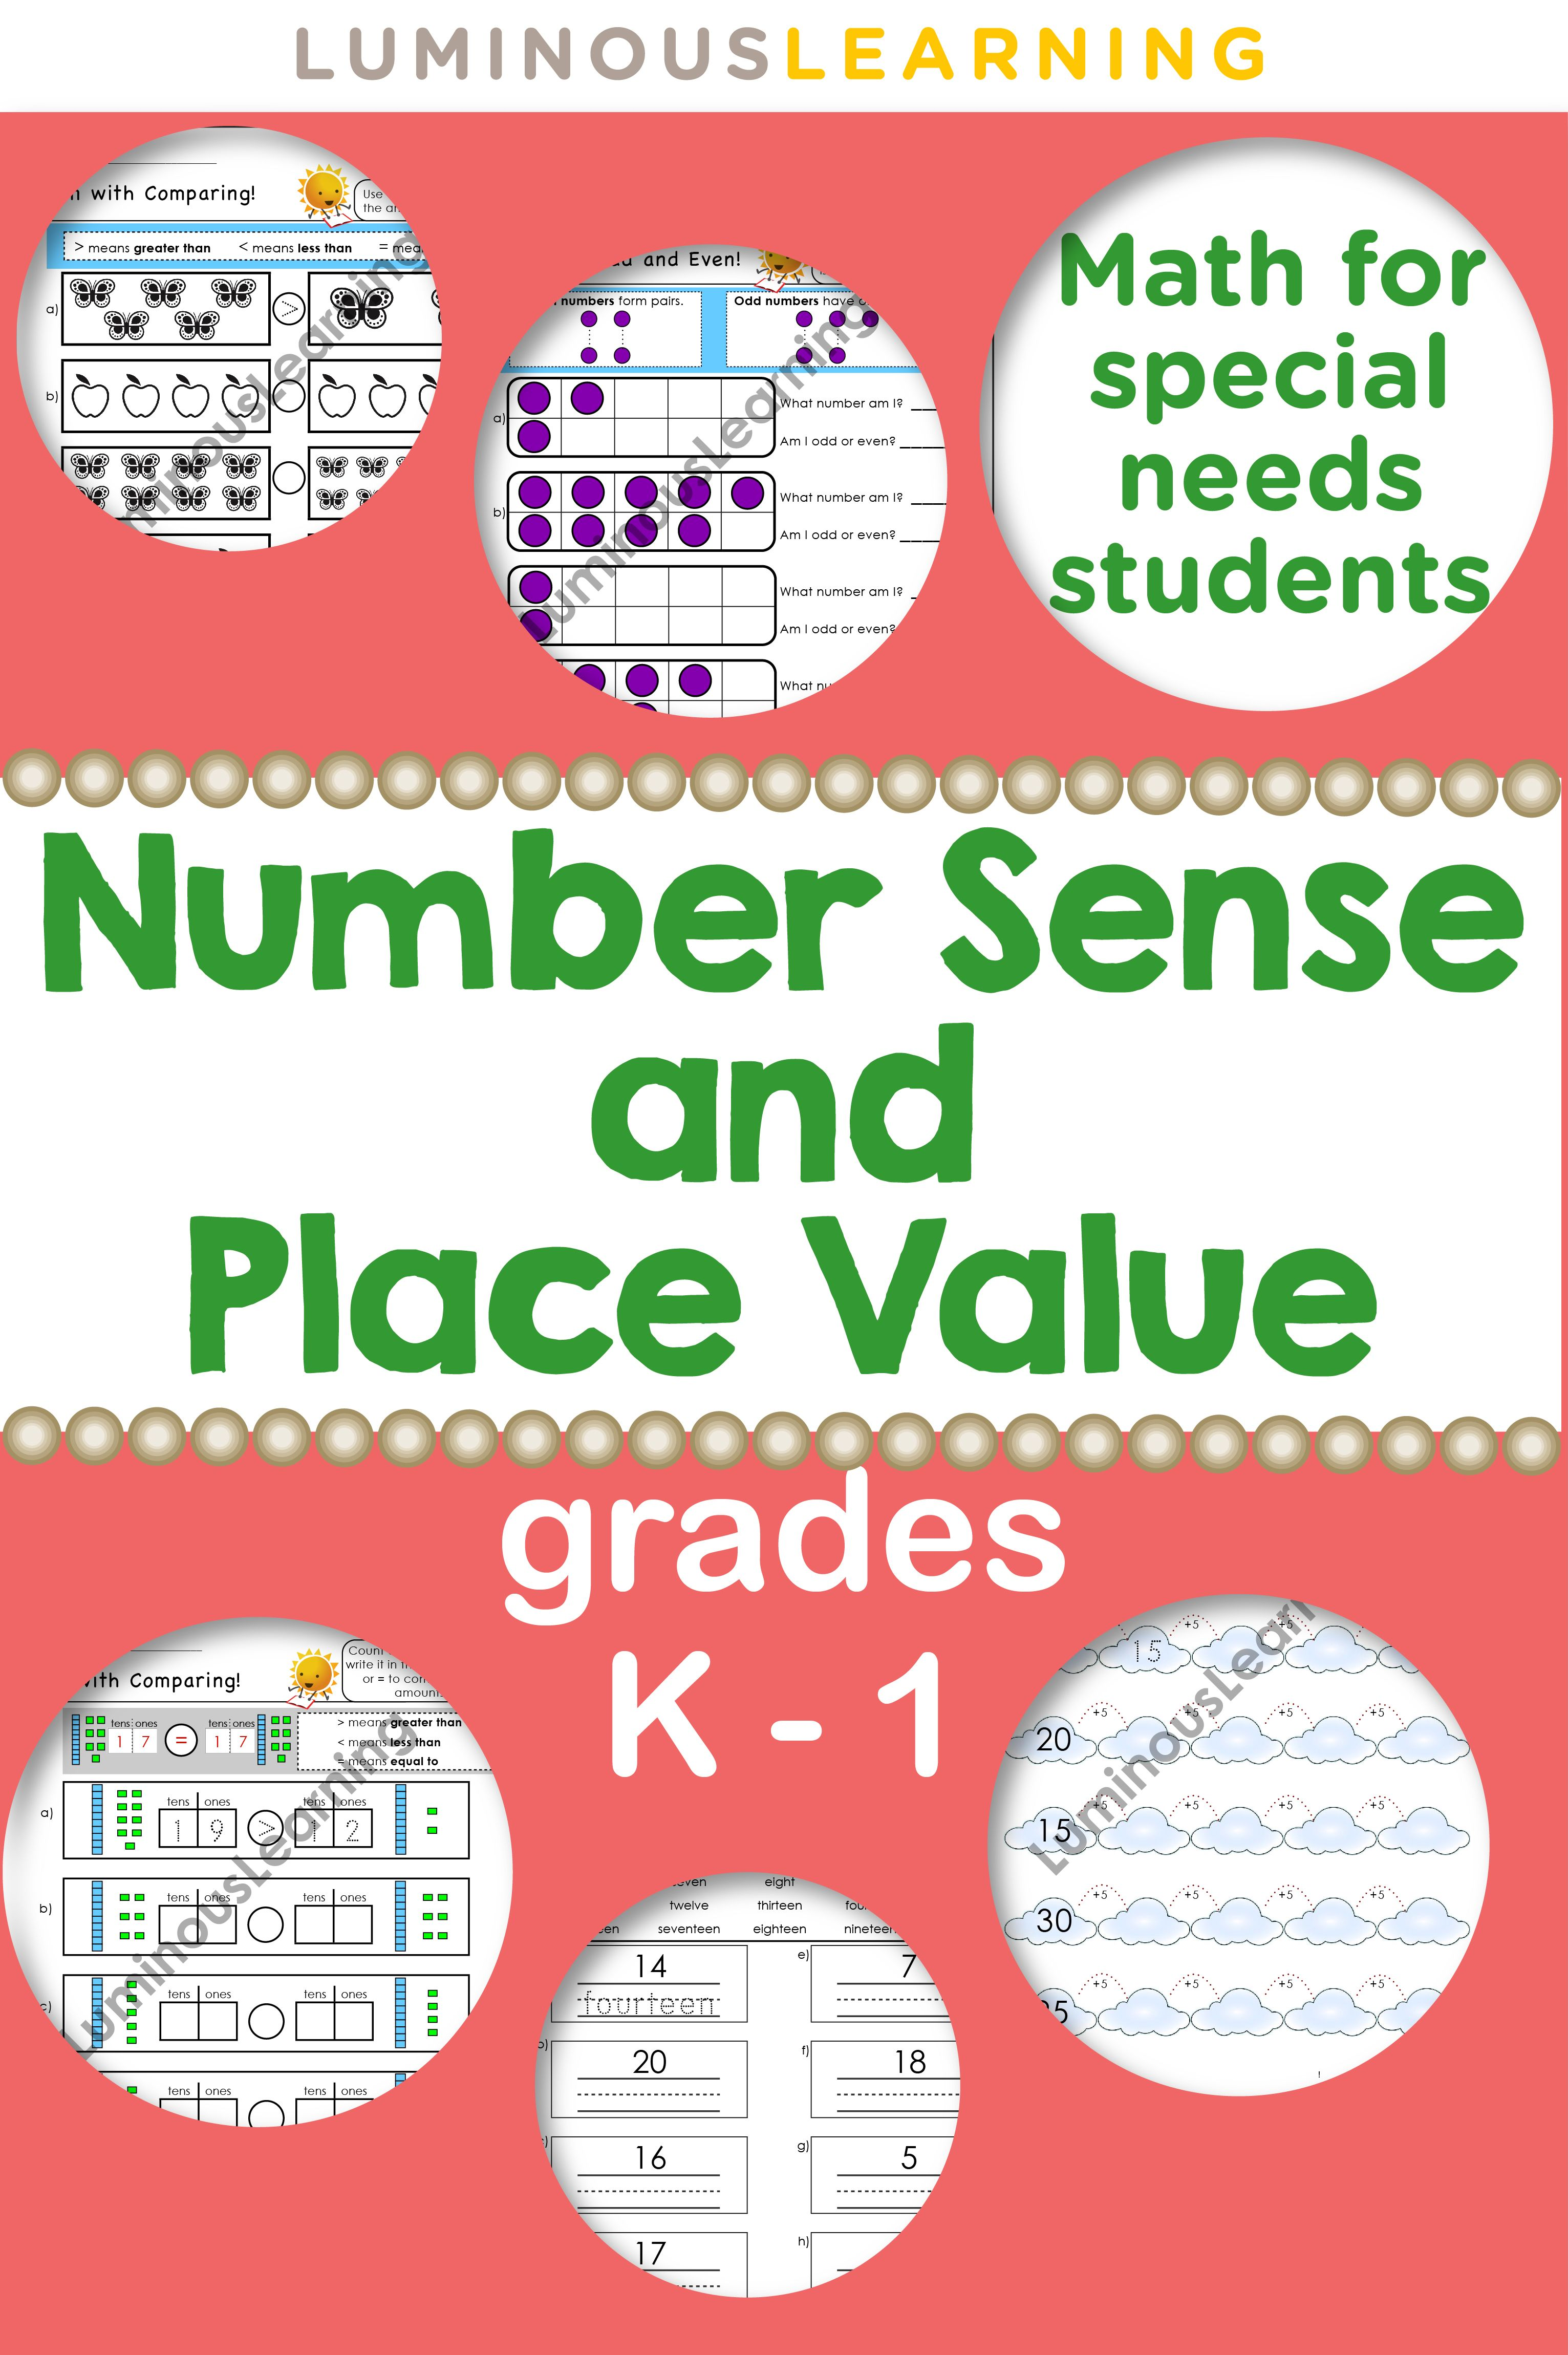 Providing Math Help With Visual Math Worksheets Which Include Base